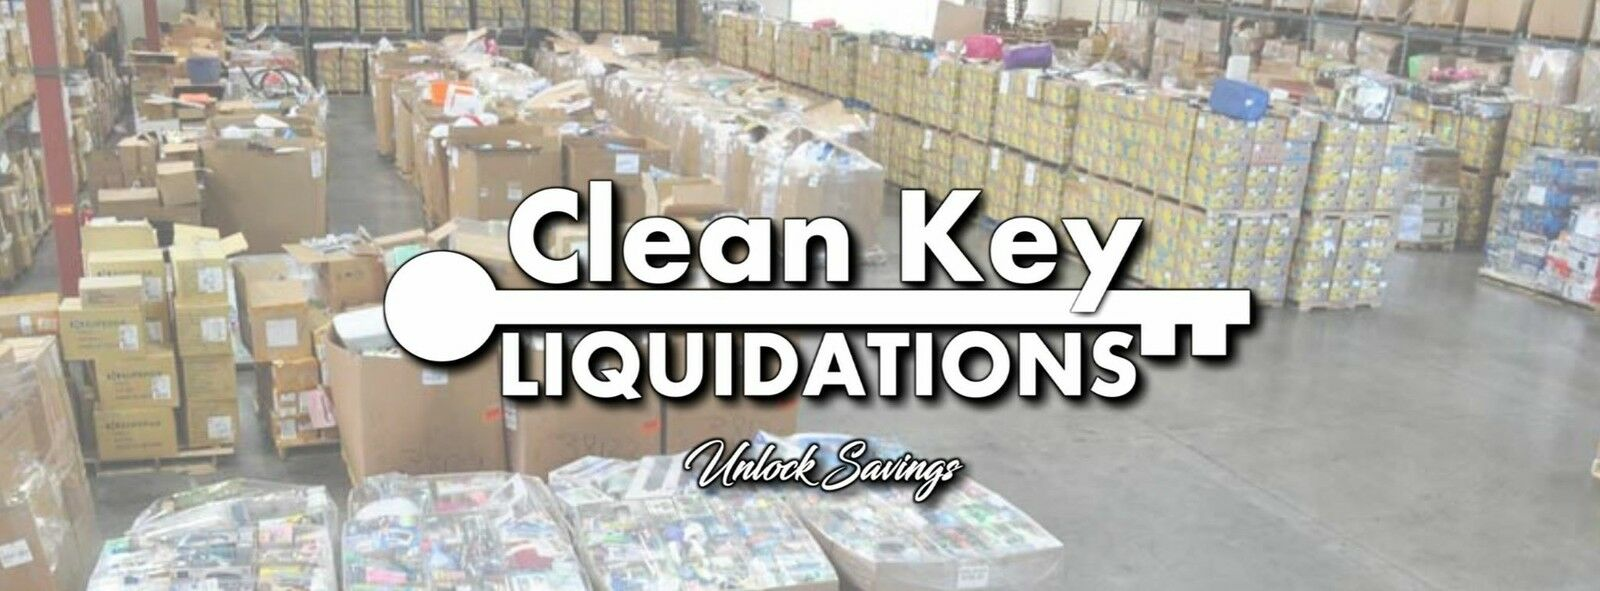 CleanKey Liquidations